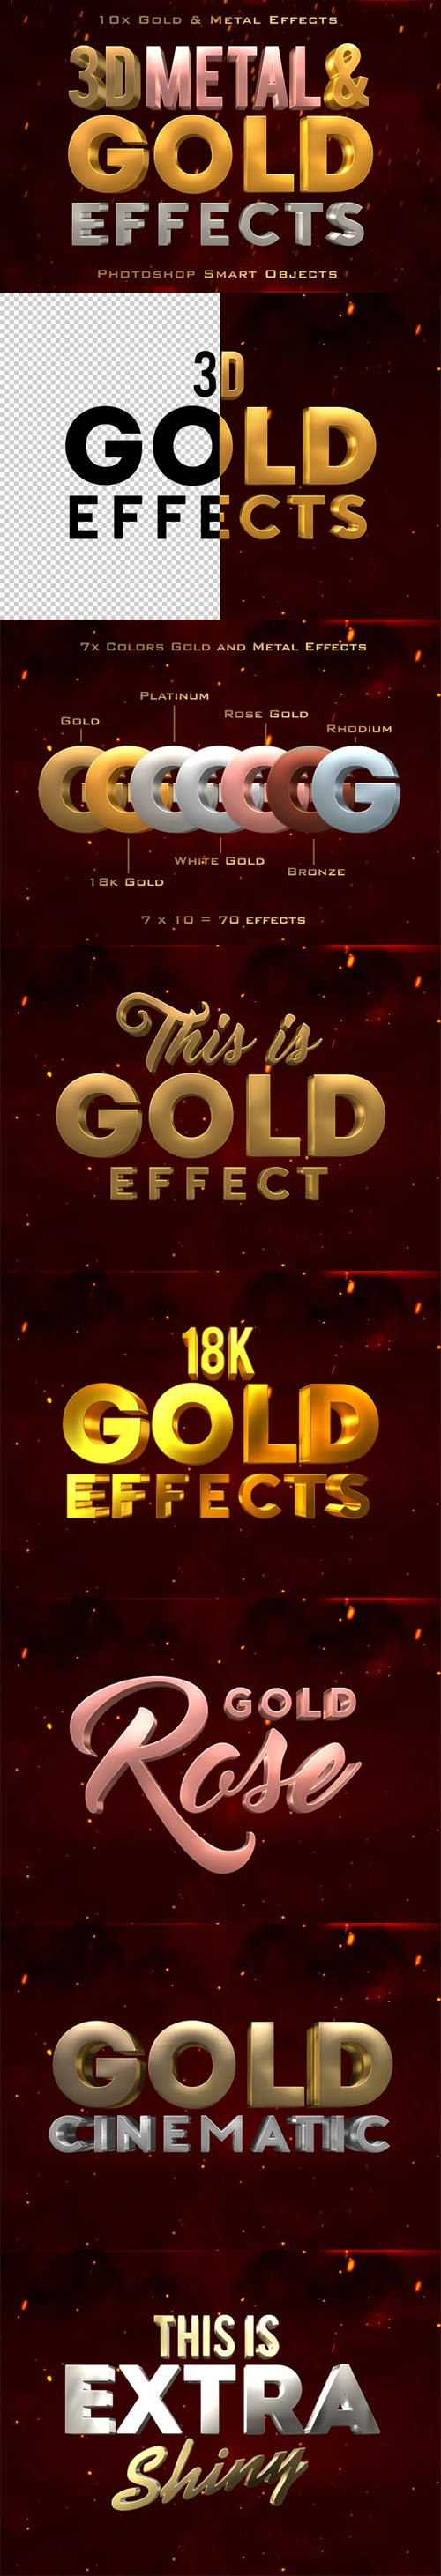 10x 3D Metal & Gold Effects for Photoshop